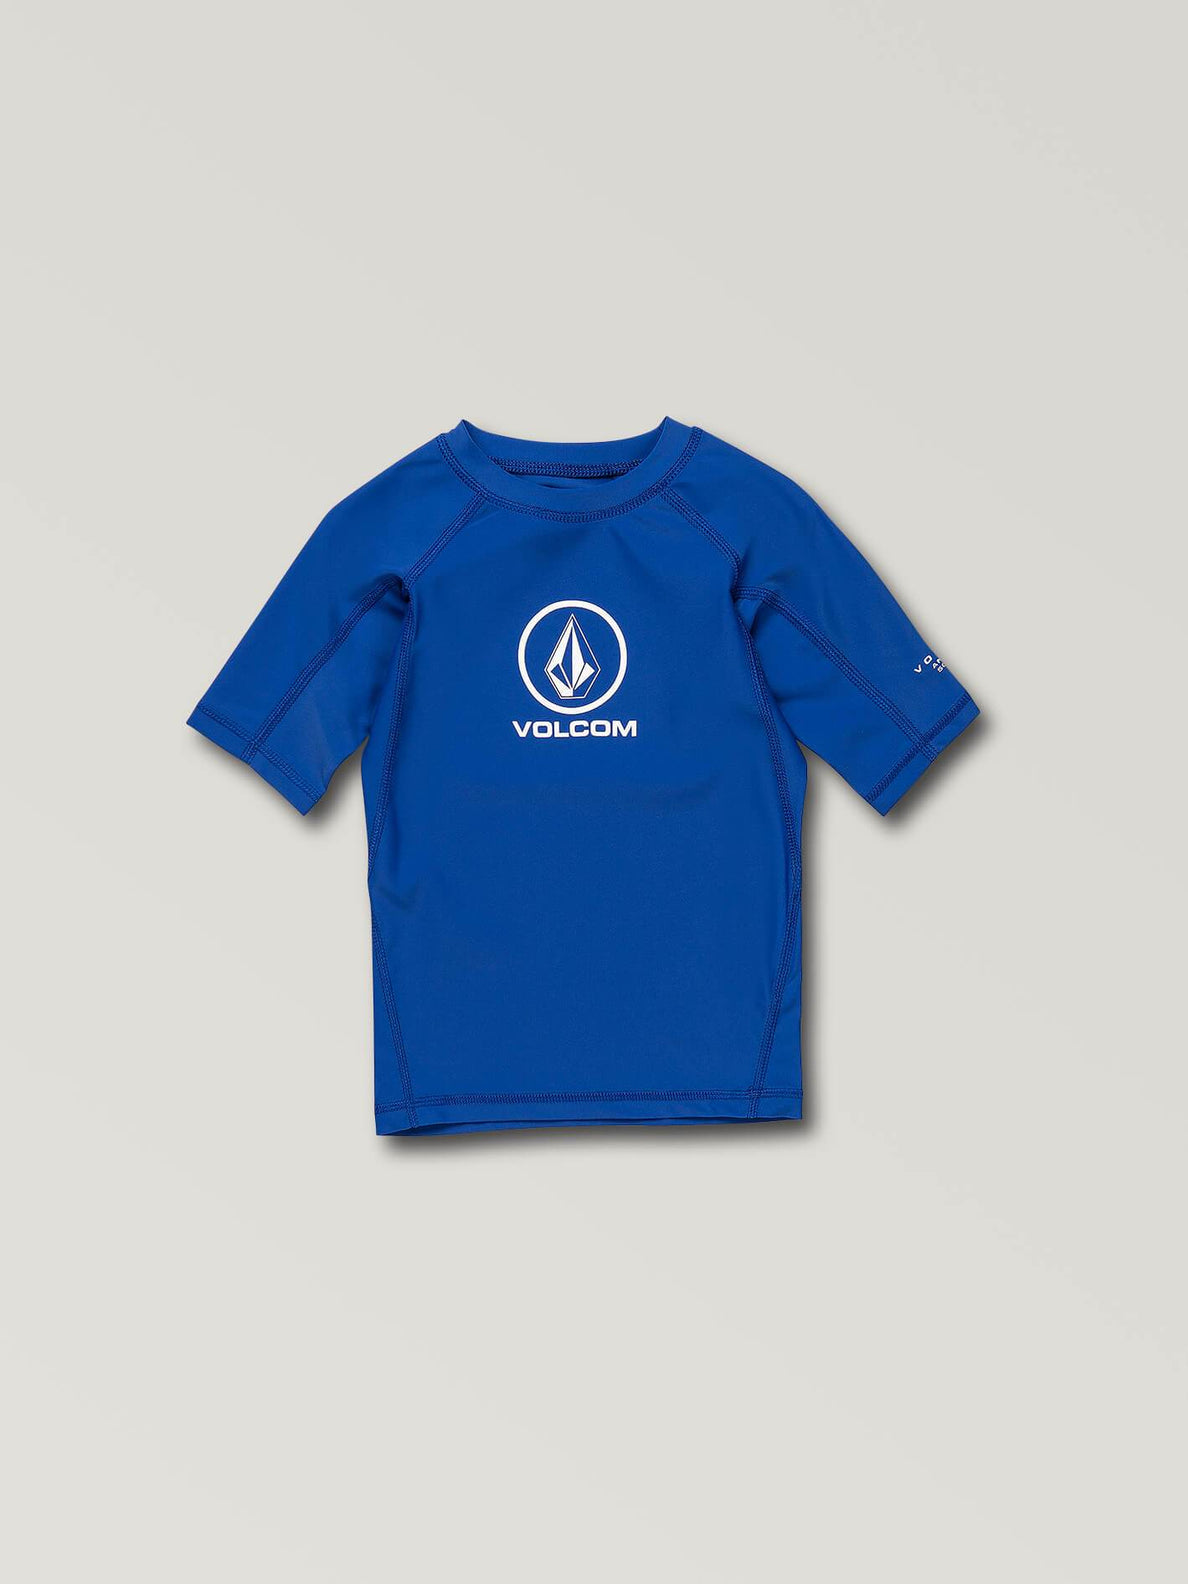 Little Boys Lido Solid Short Sleeve Rashguard In Snow Royal, Front View